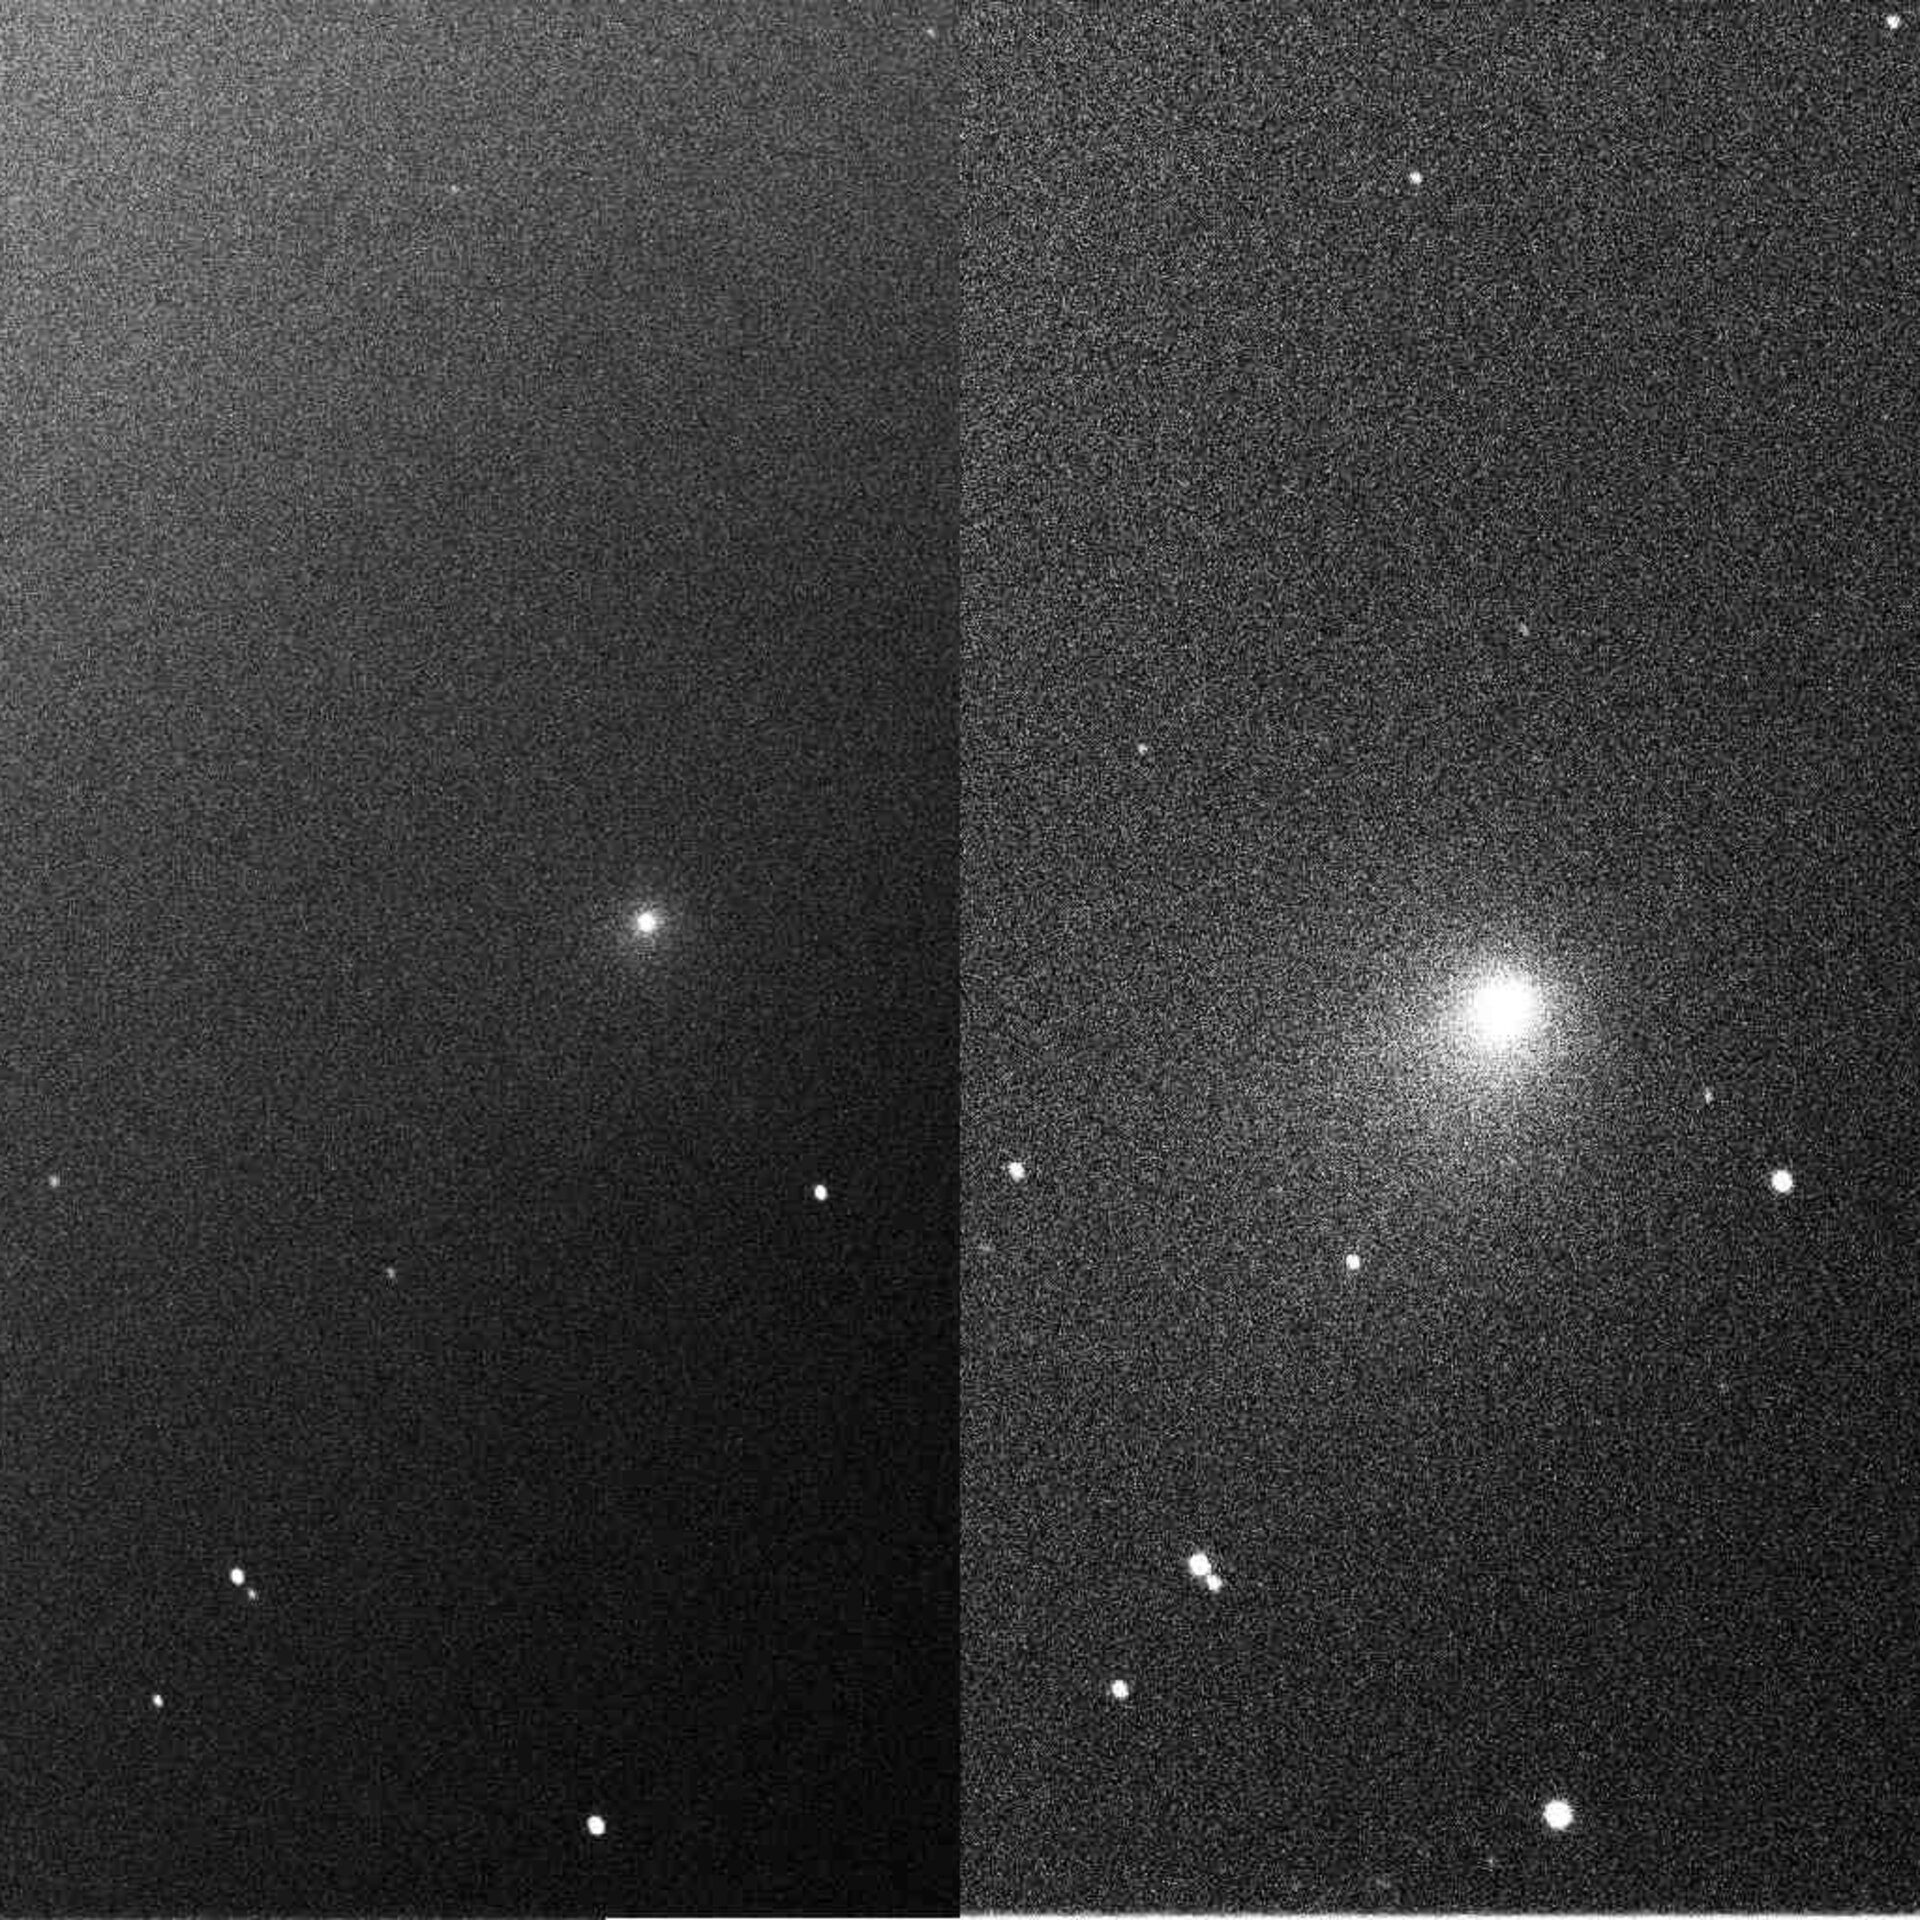 First European images of impact on Comet 9P/Tempel 1